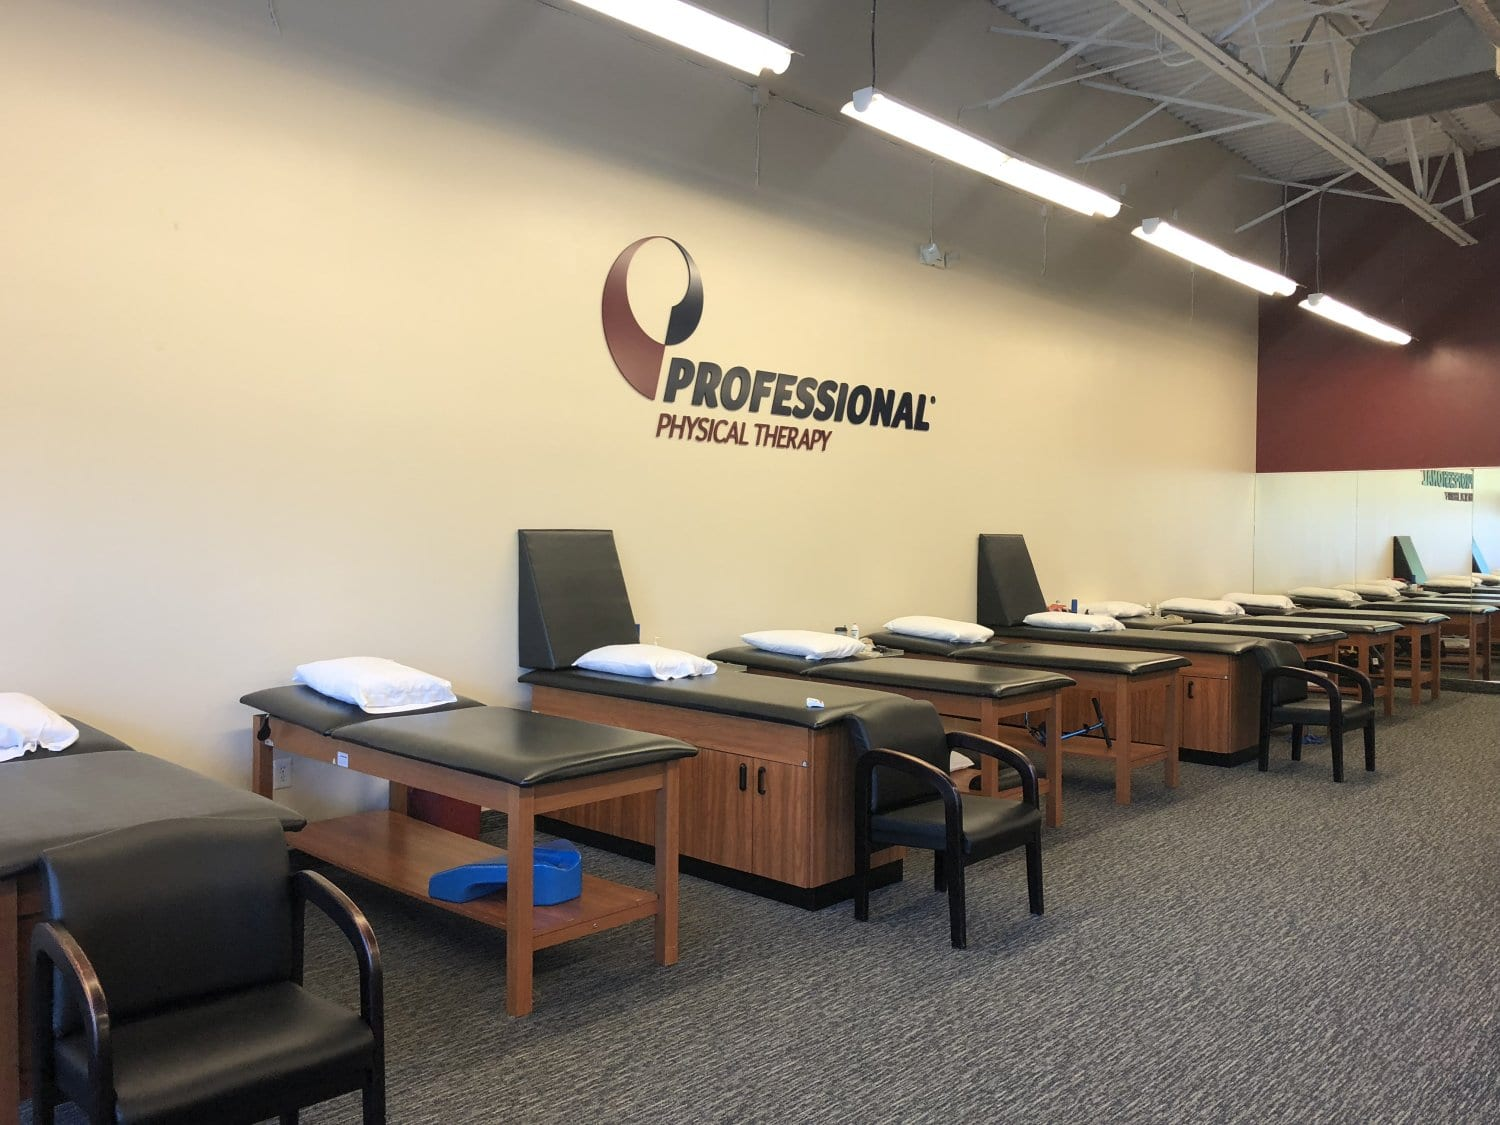 This is an image of our stretch beds at the physical therapy clinic in River Edge, New Jersey.